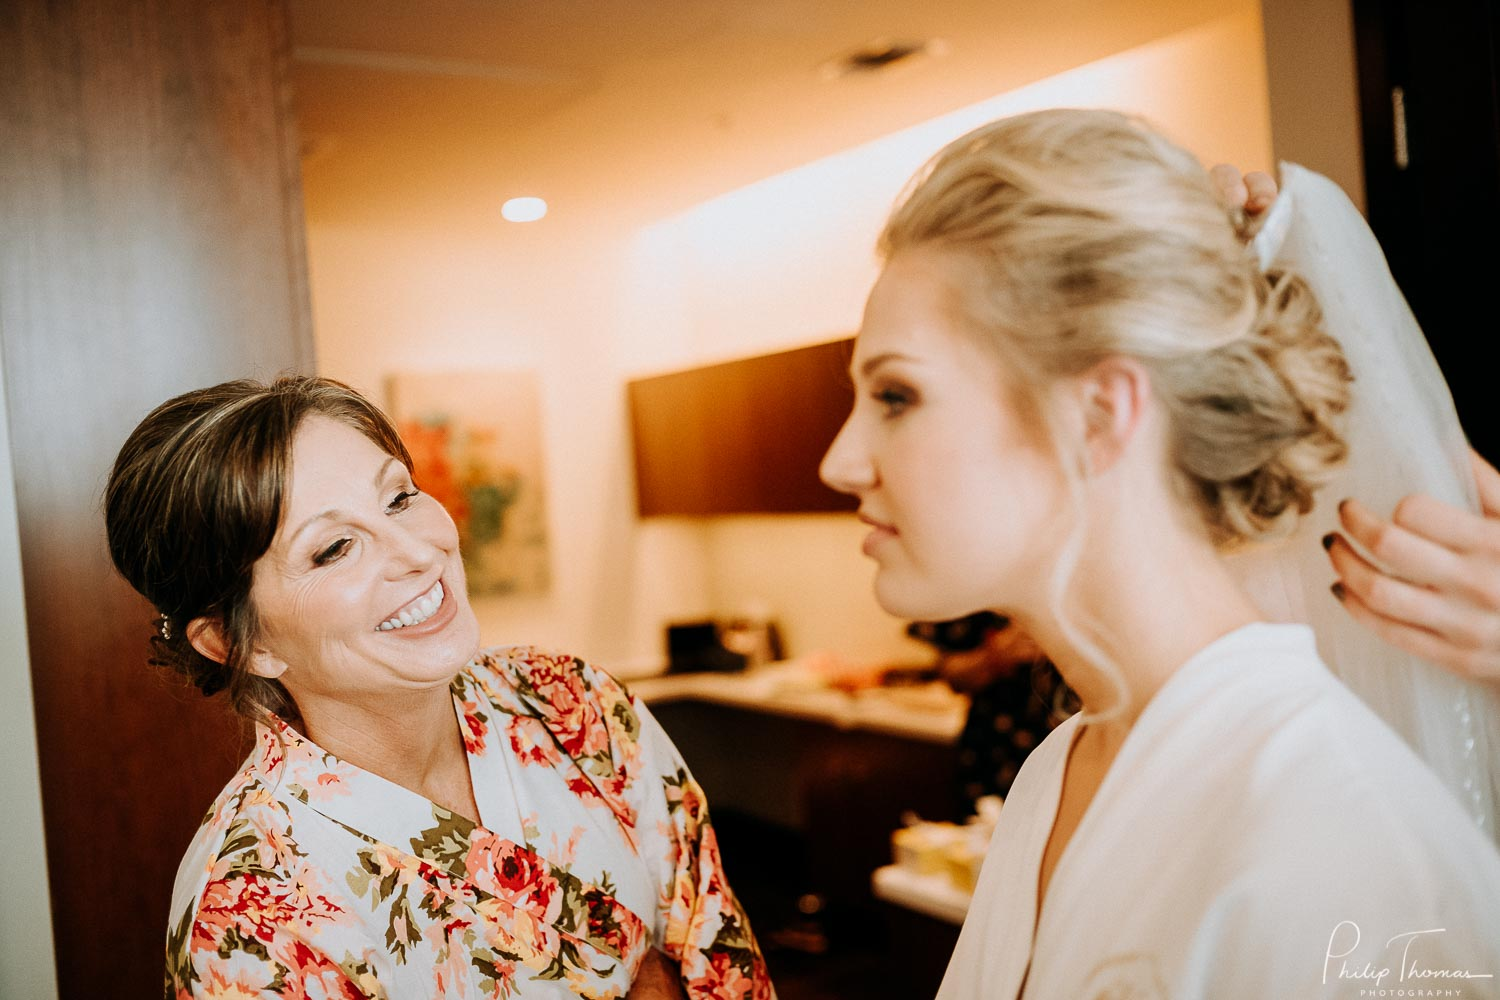 13-The JW Marriott Downtown Houston bride and groom get ready -Philip Thomas Photography